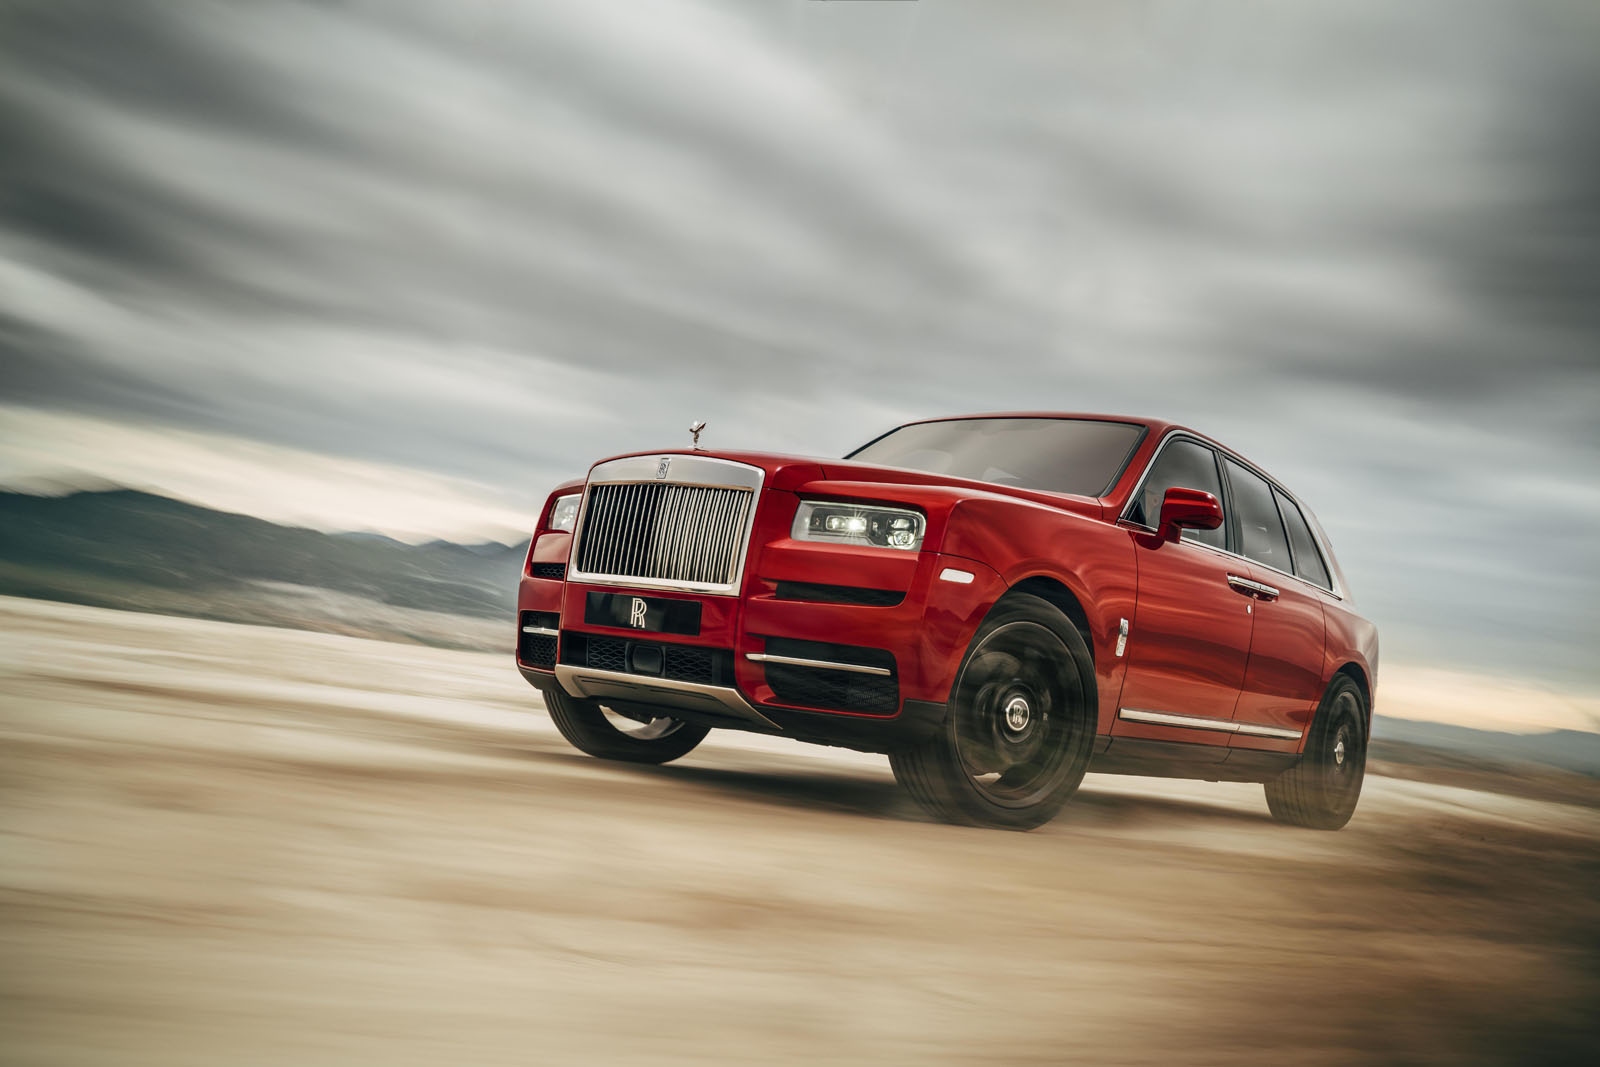 TOP 10 BETTER NAMES FOR THE CULLINAN, ROLLS ROYCE